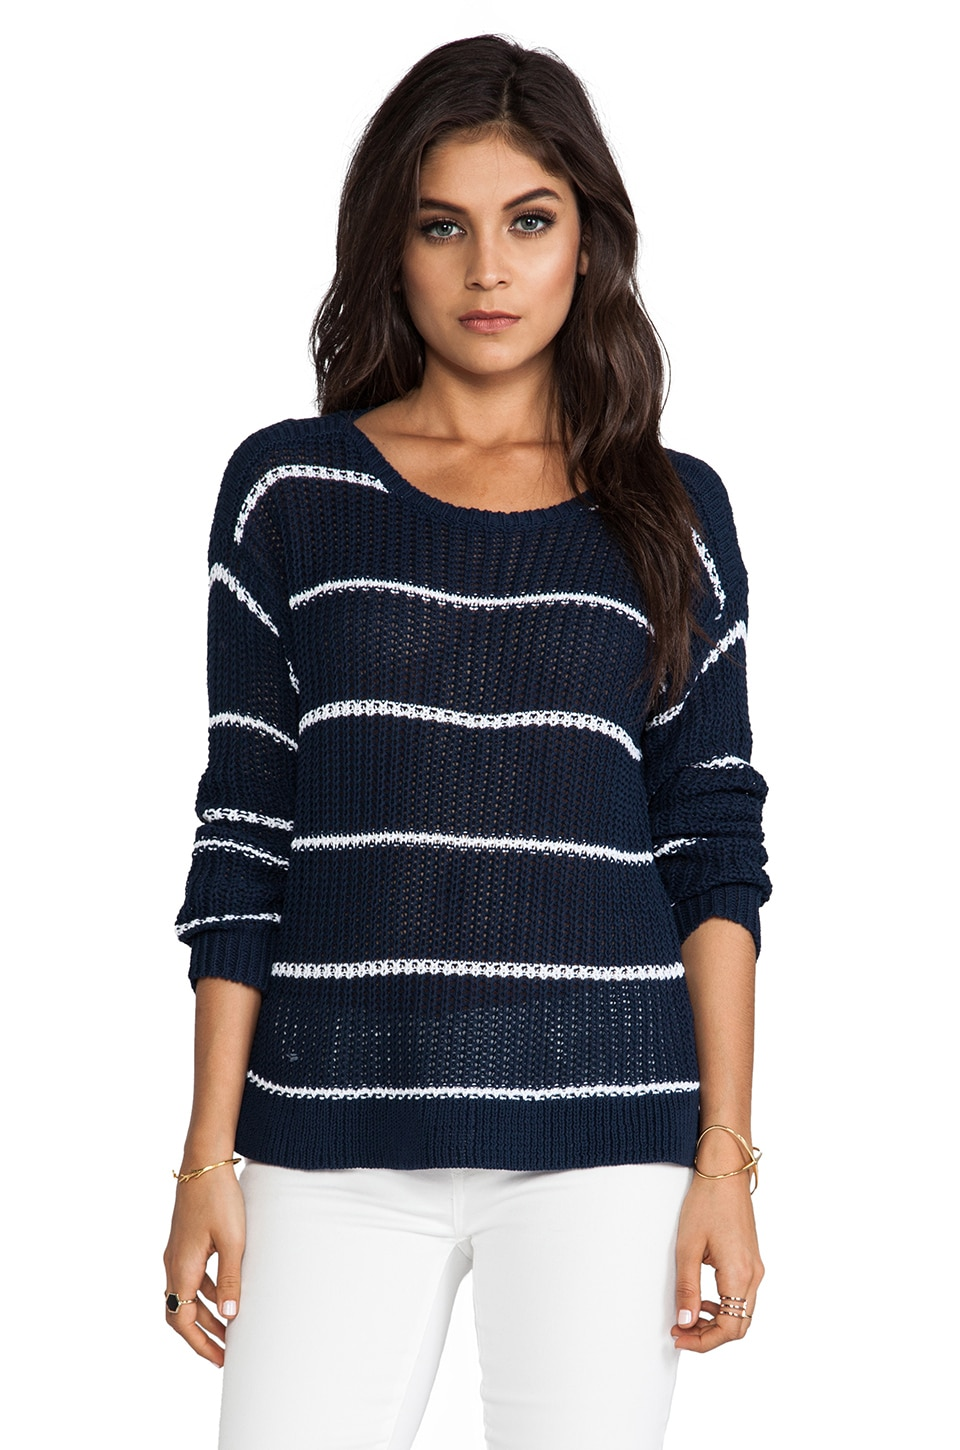 C&C California Boatneck Sweater in Navy